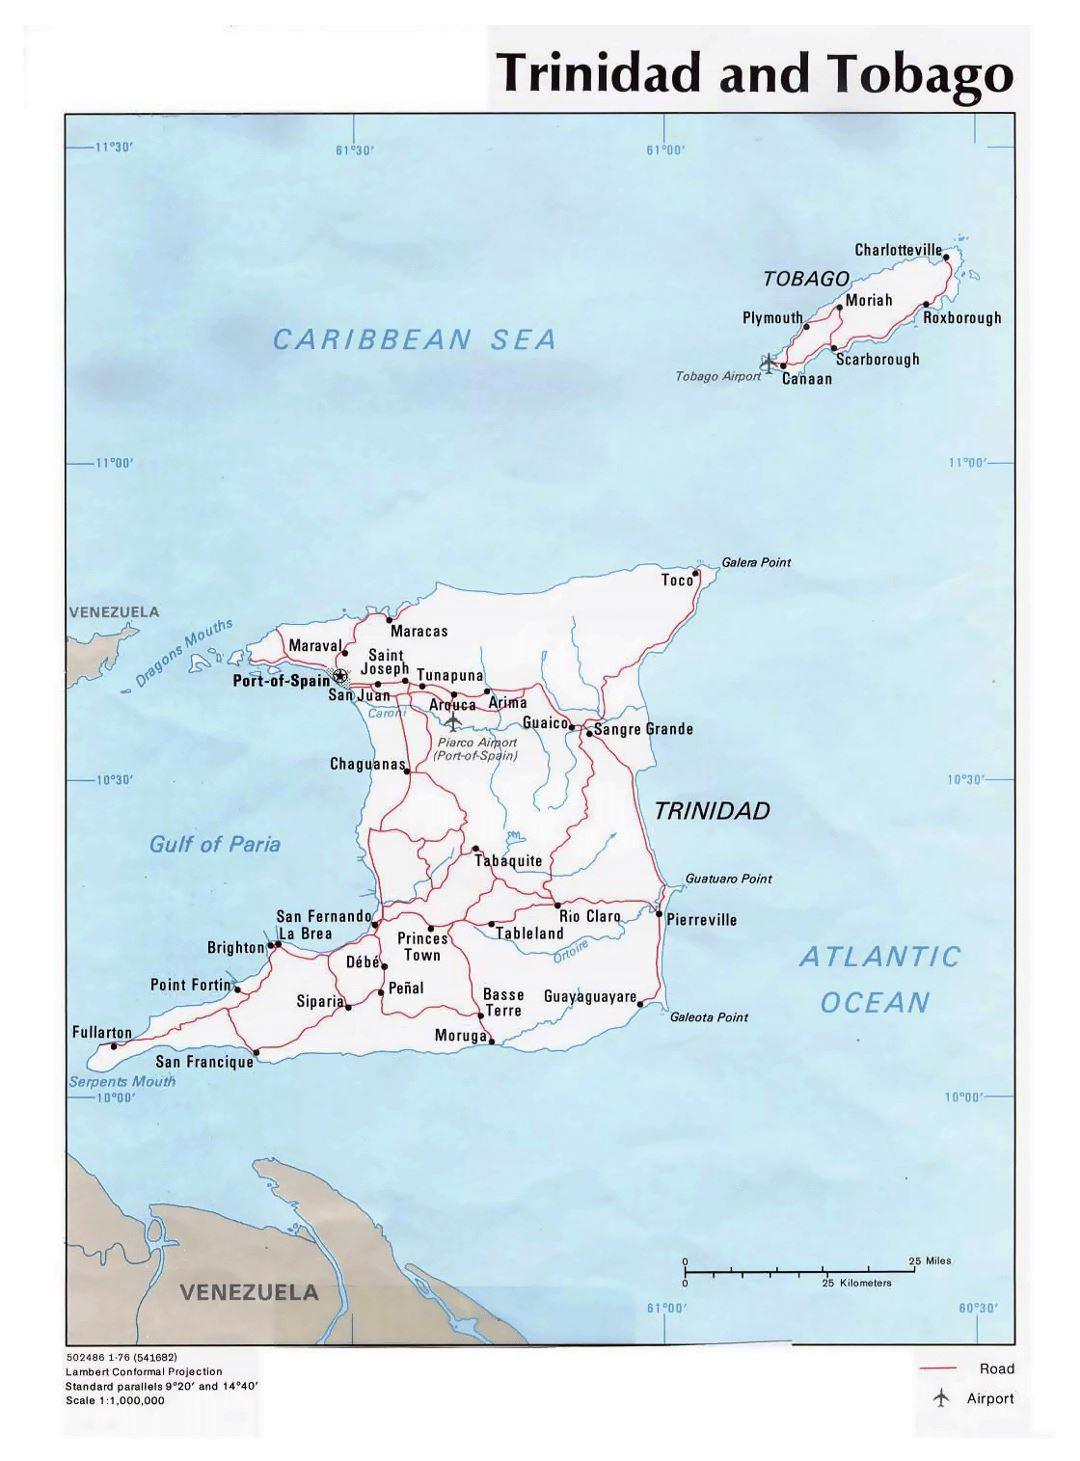 Detailed political map of Trinidad and Tobago with roads, cities and airports - 1976